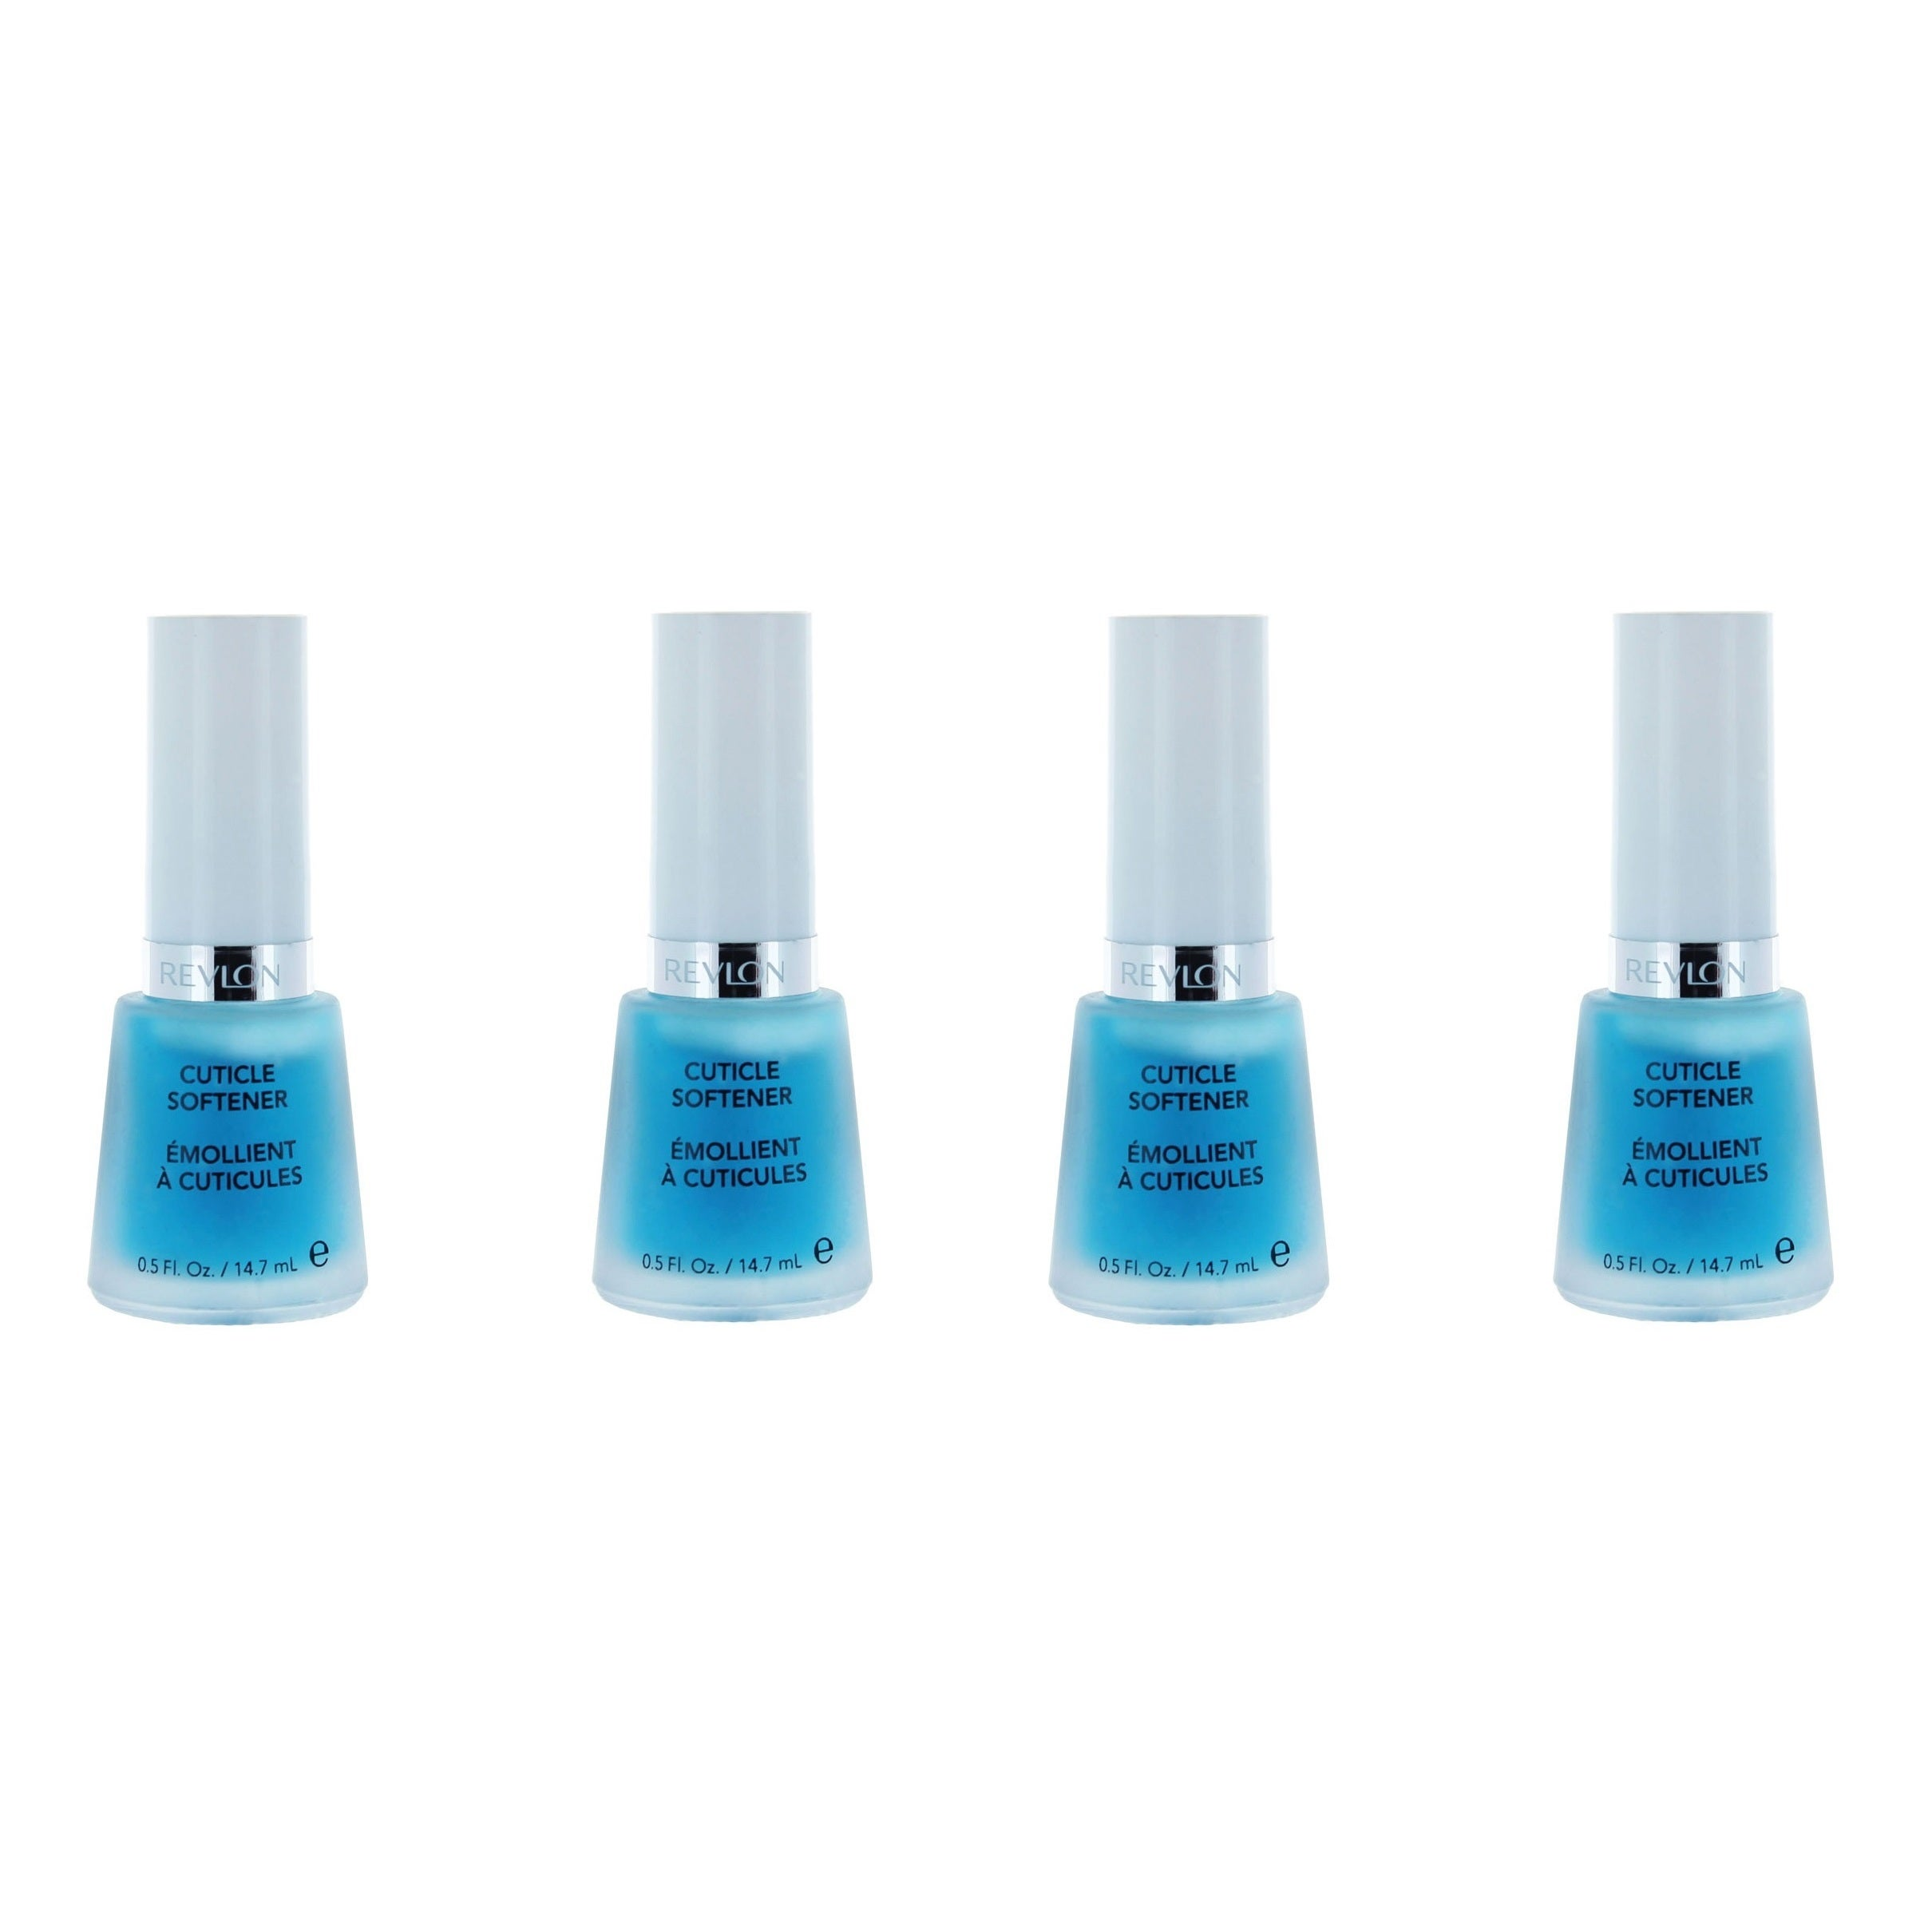 Revlon Cuticle Softener - Free Shipping On Orders Over $45 ...